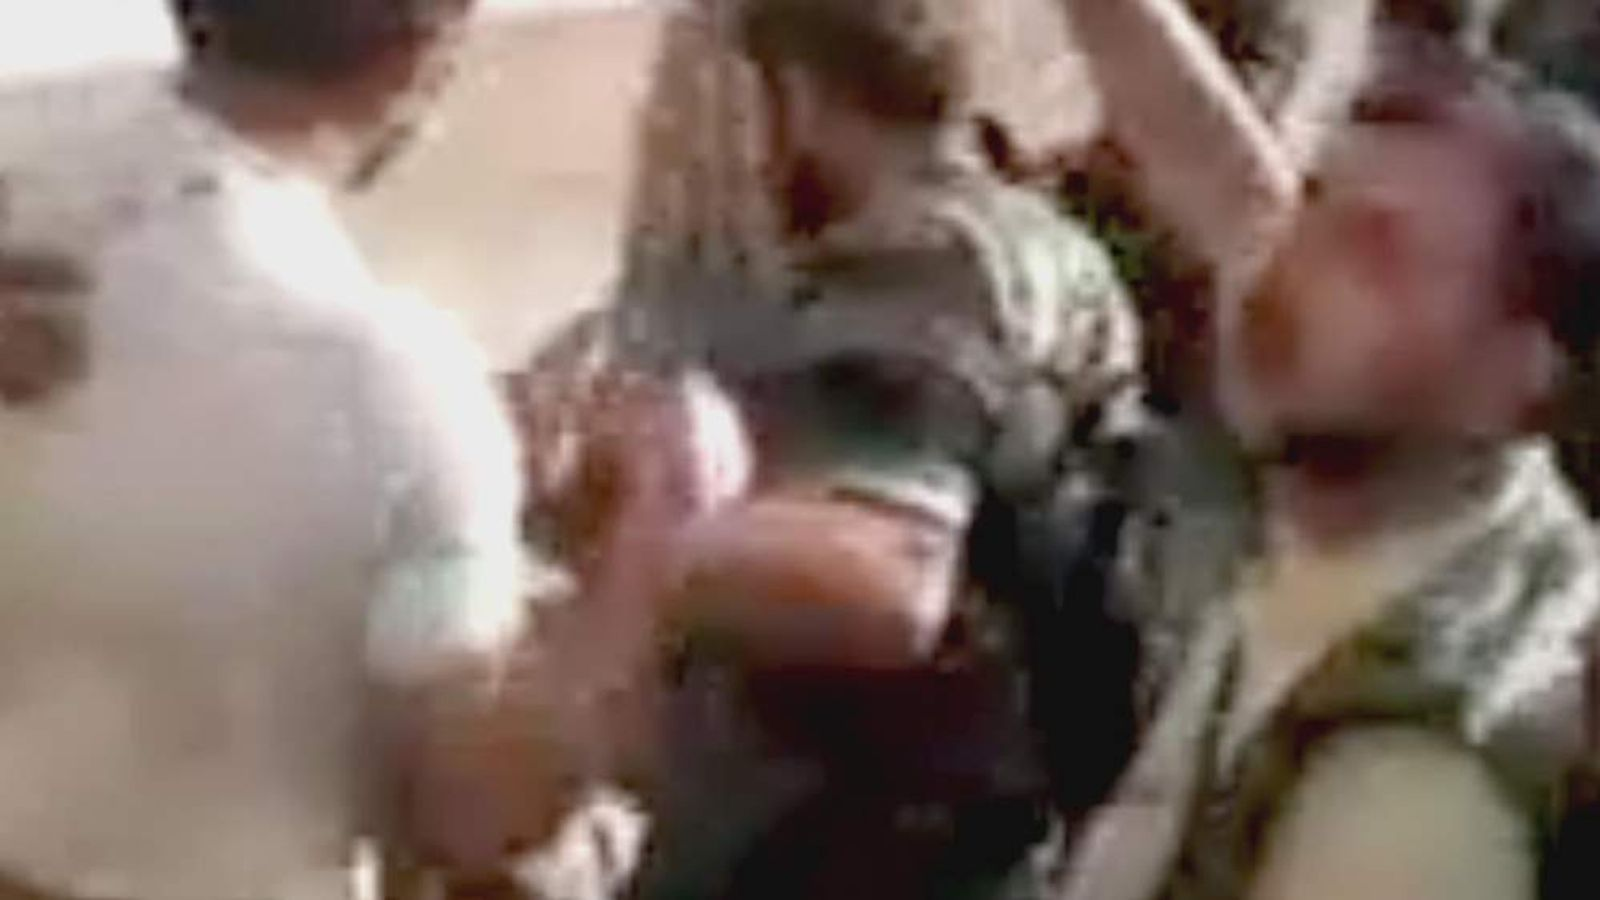 Video apparently shows Syrian rebels leading pro-government militia fighters to their deaths